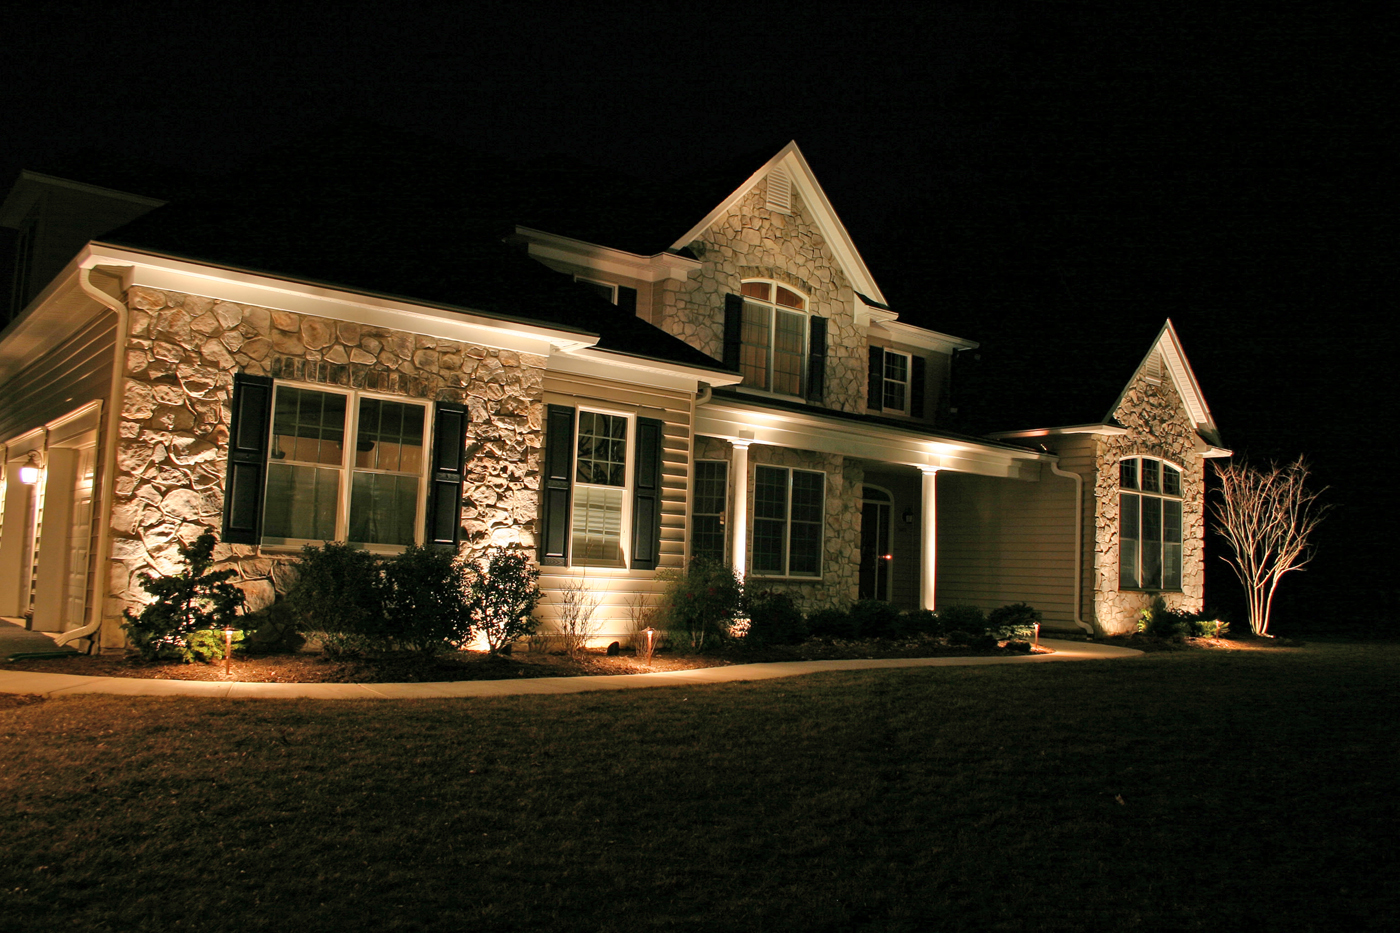 outdoor lighting effects. minneapolis wall washing outdoor lighting effects g